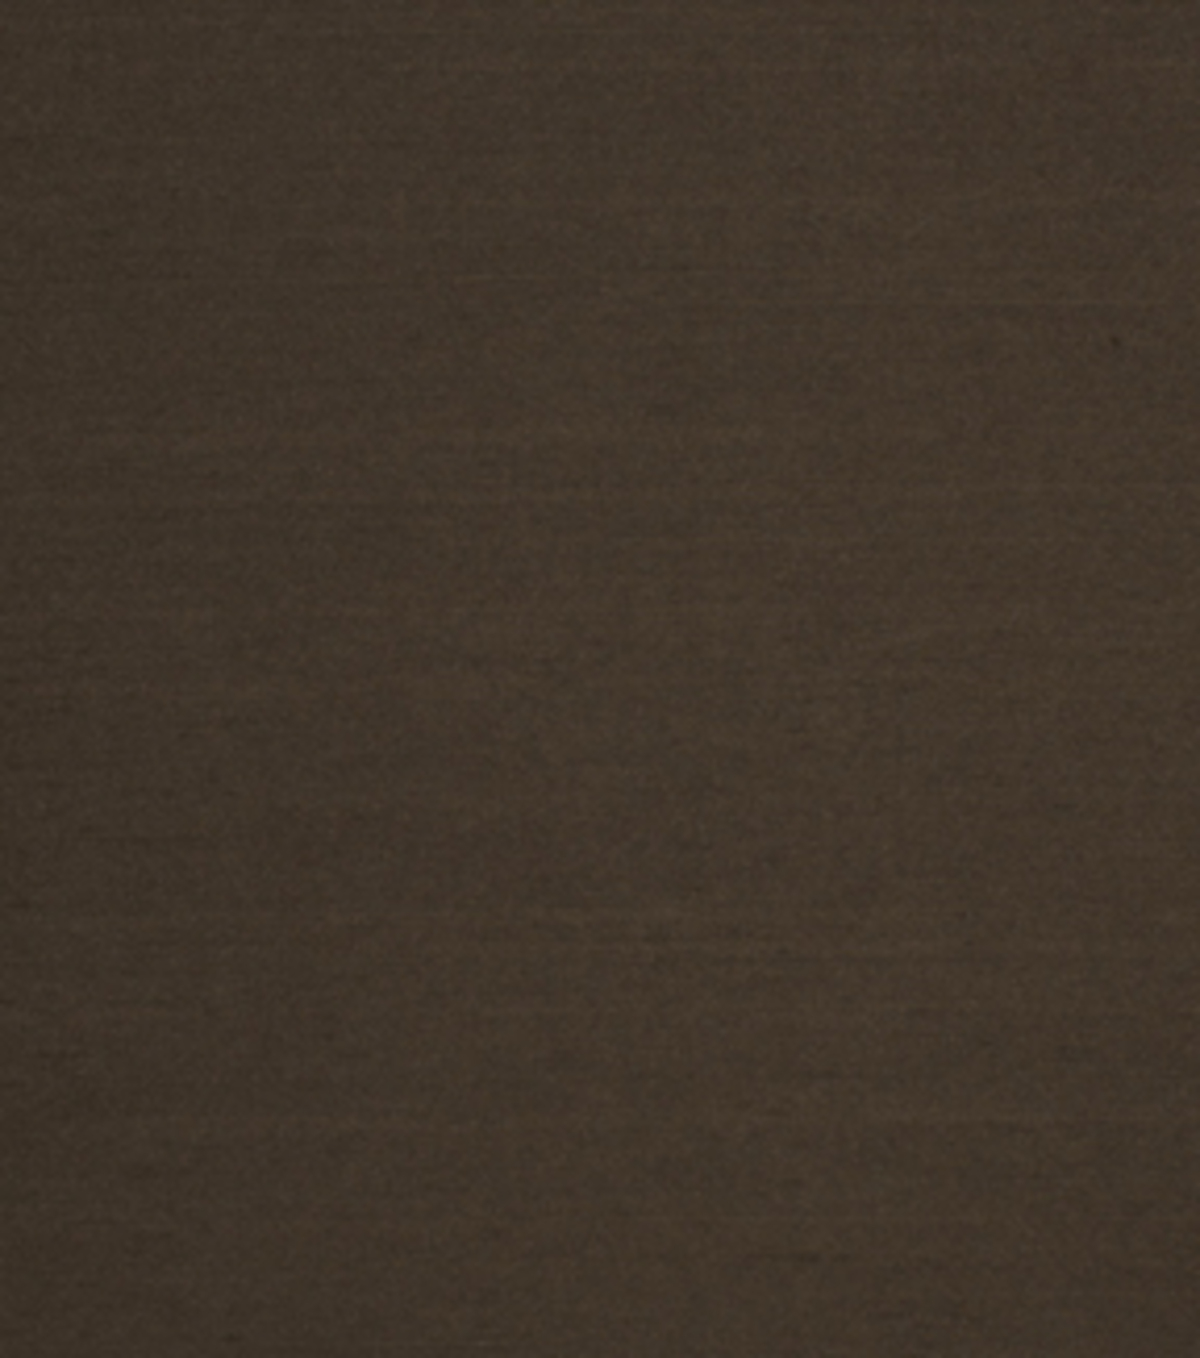 Home Decor 8\u0022x8\u0022 Fabric Swatch-Signature Series Bravo Fudge